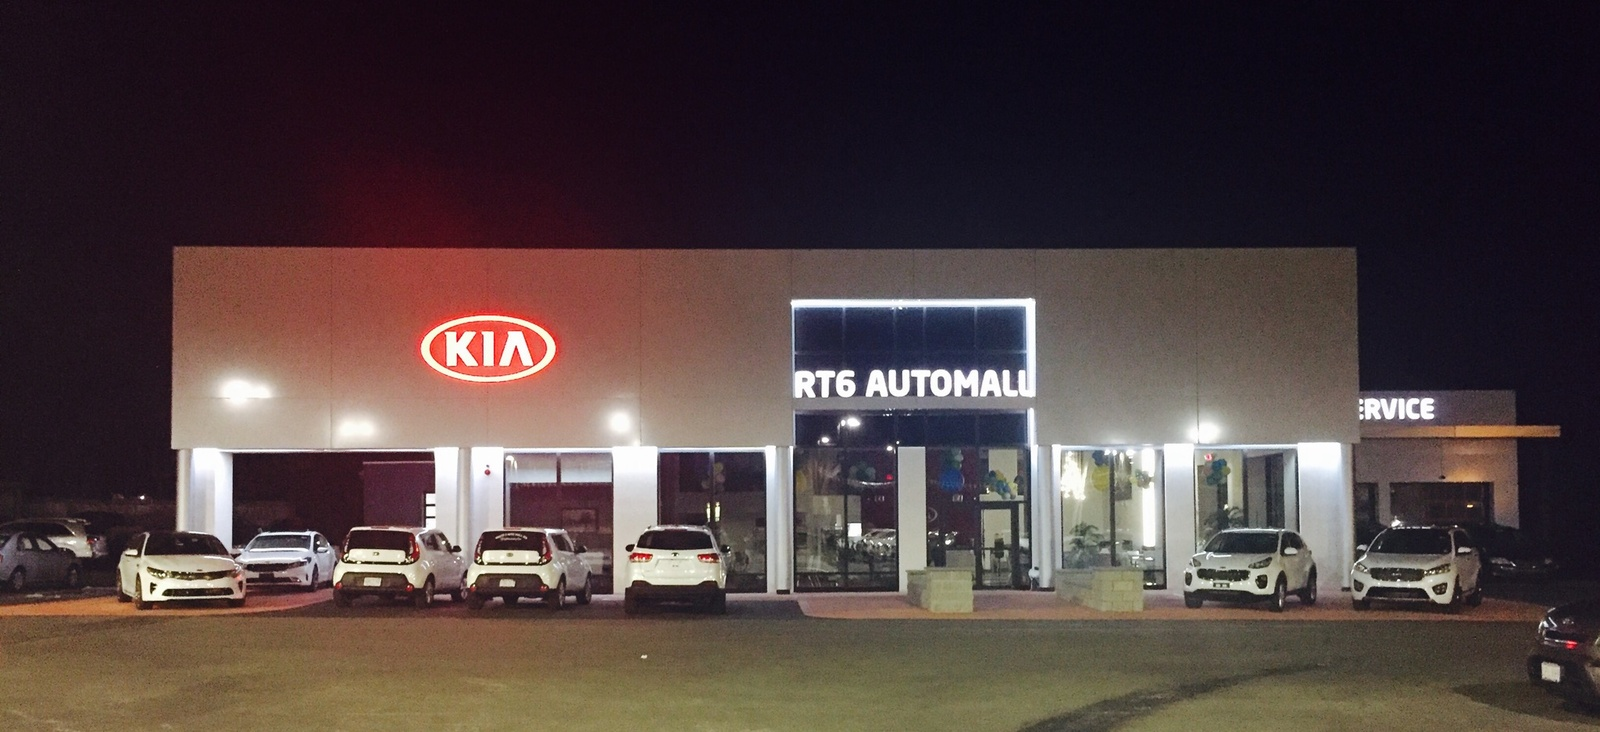 Lovely Route 6 Automall Kia   Swansea, MA: Read Consumer Reviews, Browse Used And  New Cars For Sale